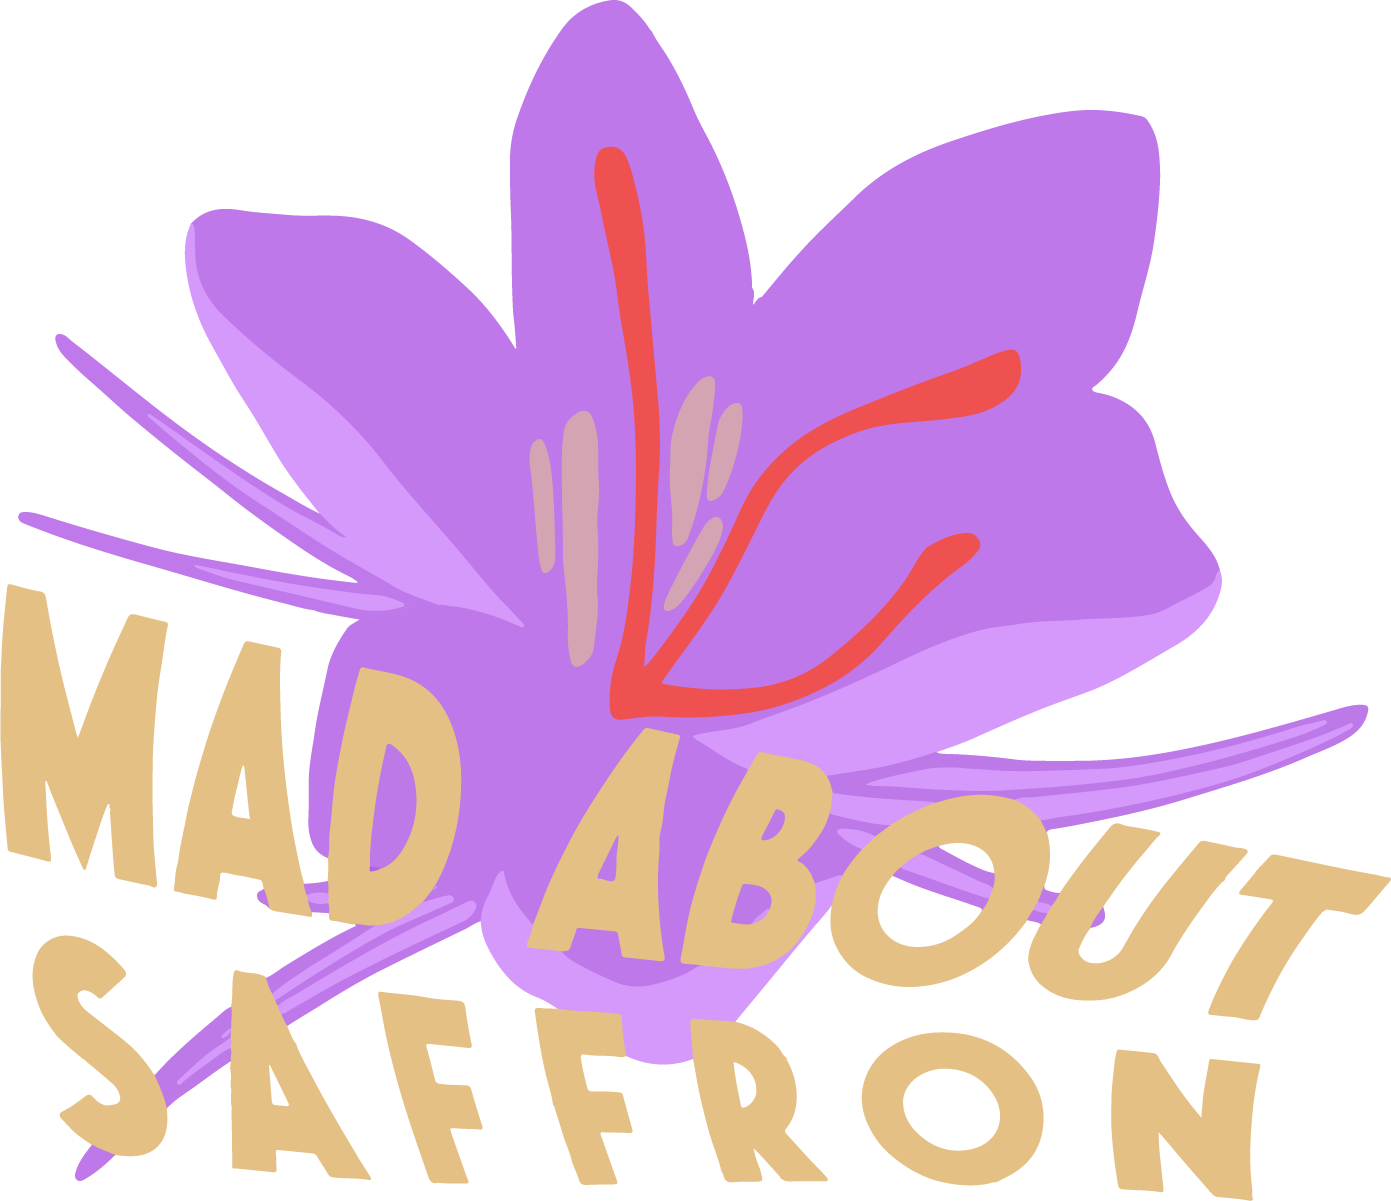 MadAboutSaffrontransparent.png